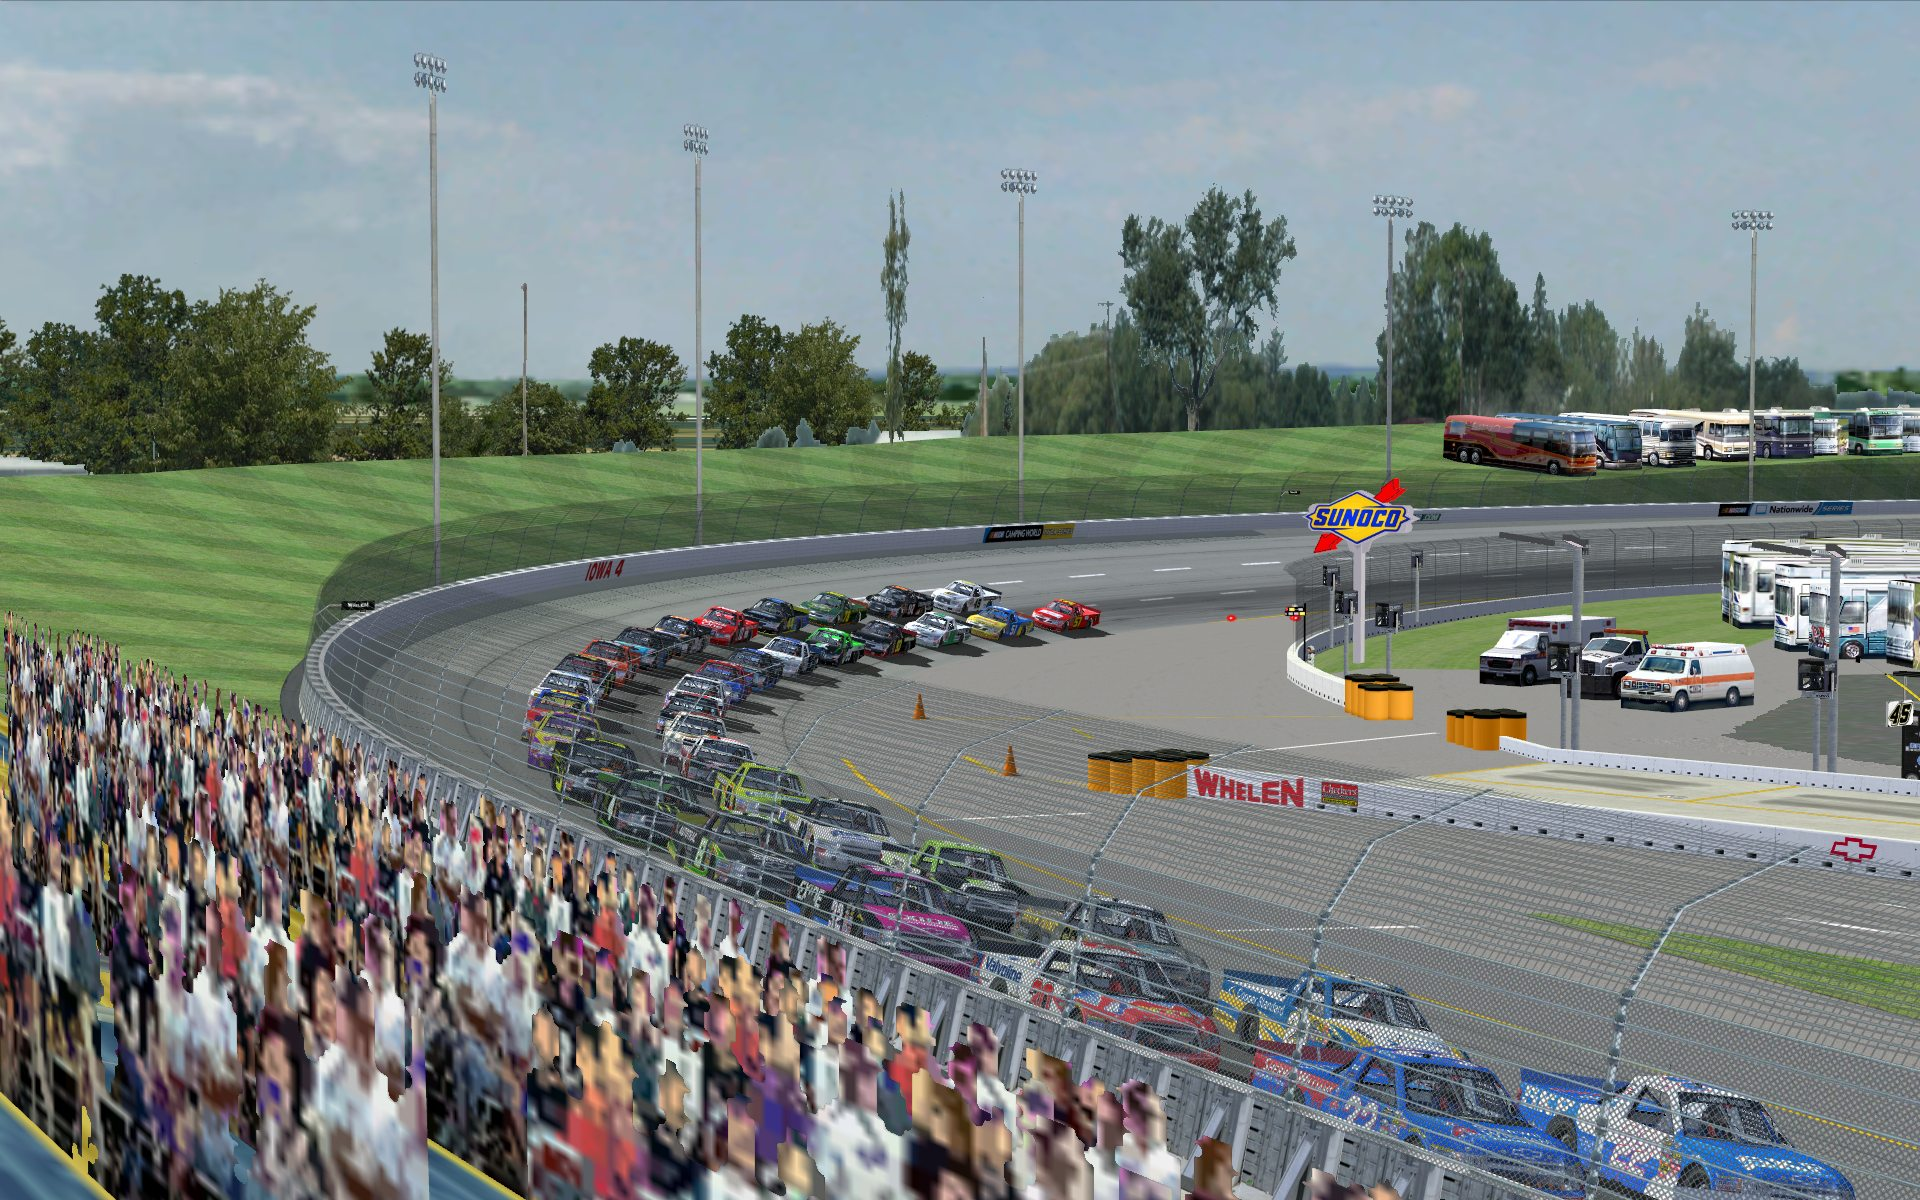 iowa speedway 5 reviews of iowa speedway we have enjoyed iowa's place to race since it  opened over the years it has become more family oriented and we couldn't be.